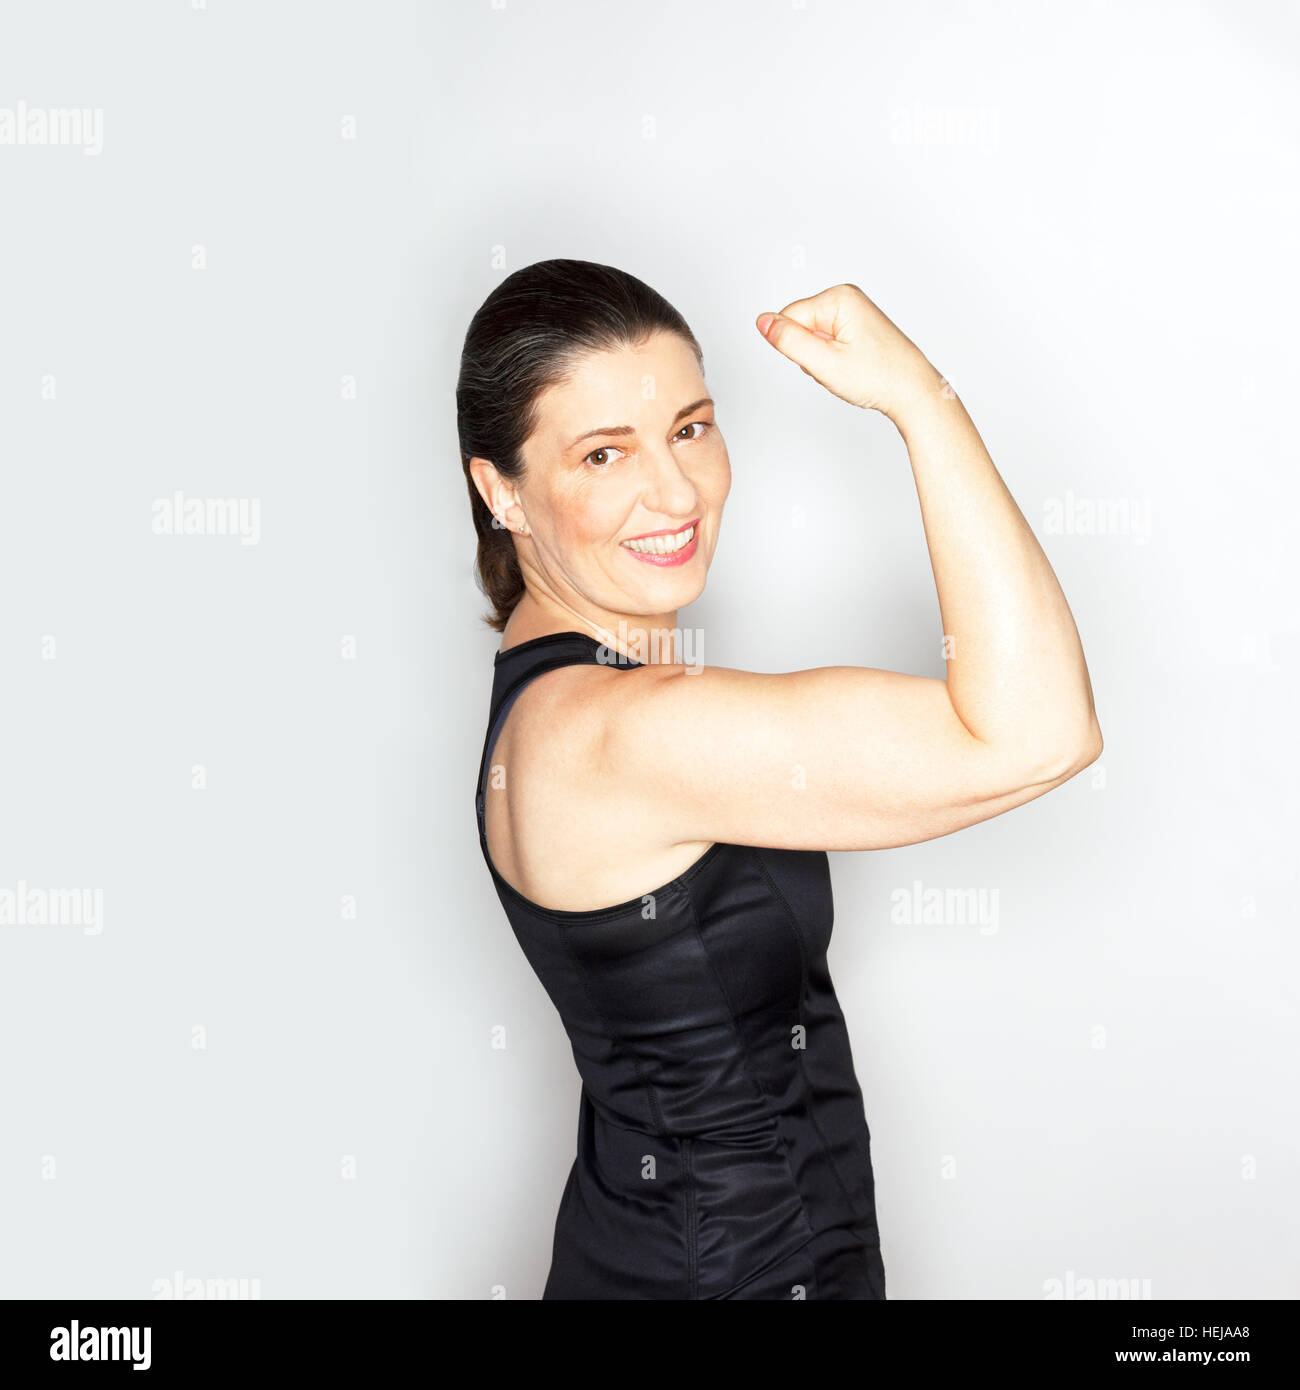 Self-confident adult woman in black muscleshirt showing her bisceps muscles, light background, responsive design, - Stock Image